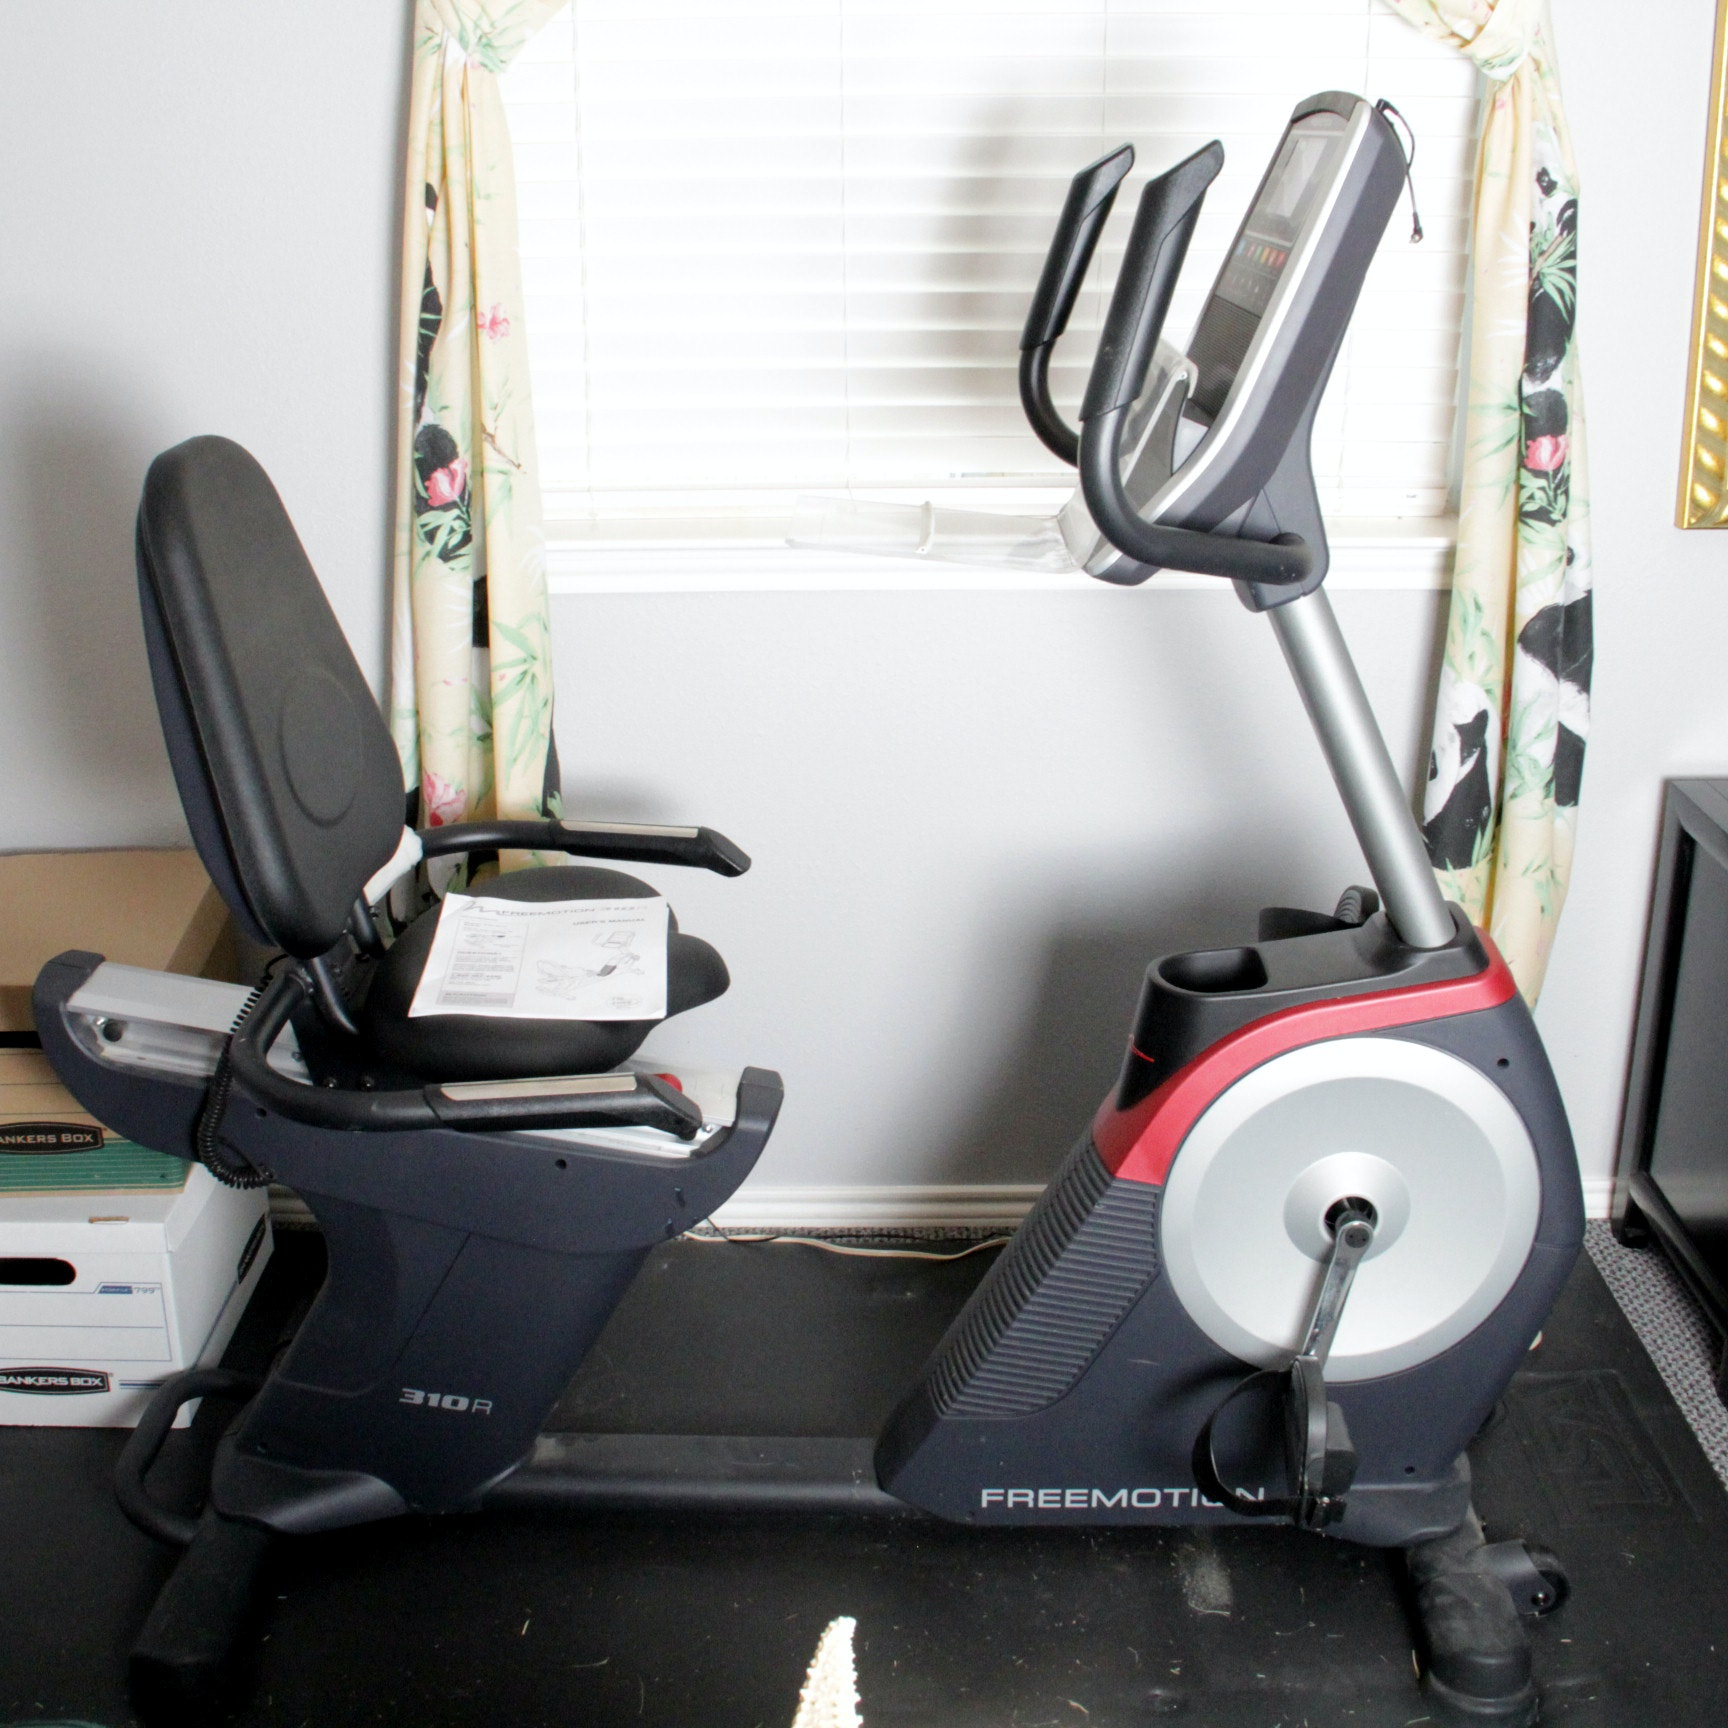 Freemotion 310R Exercise Bike with Floor Pad